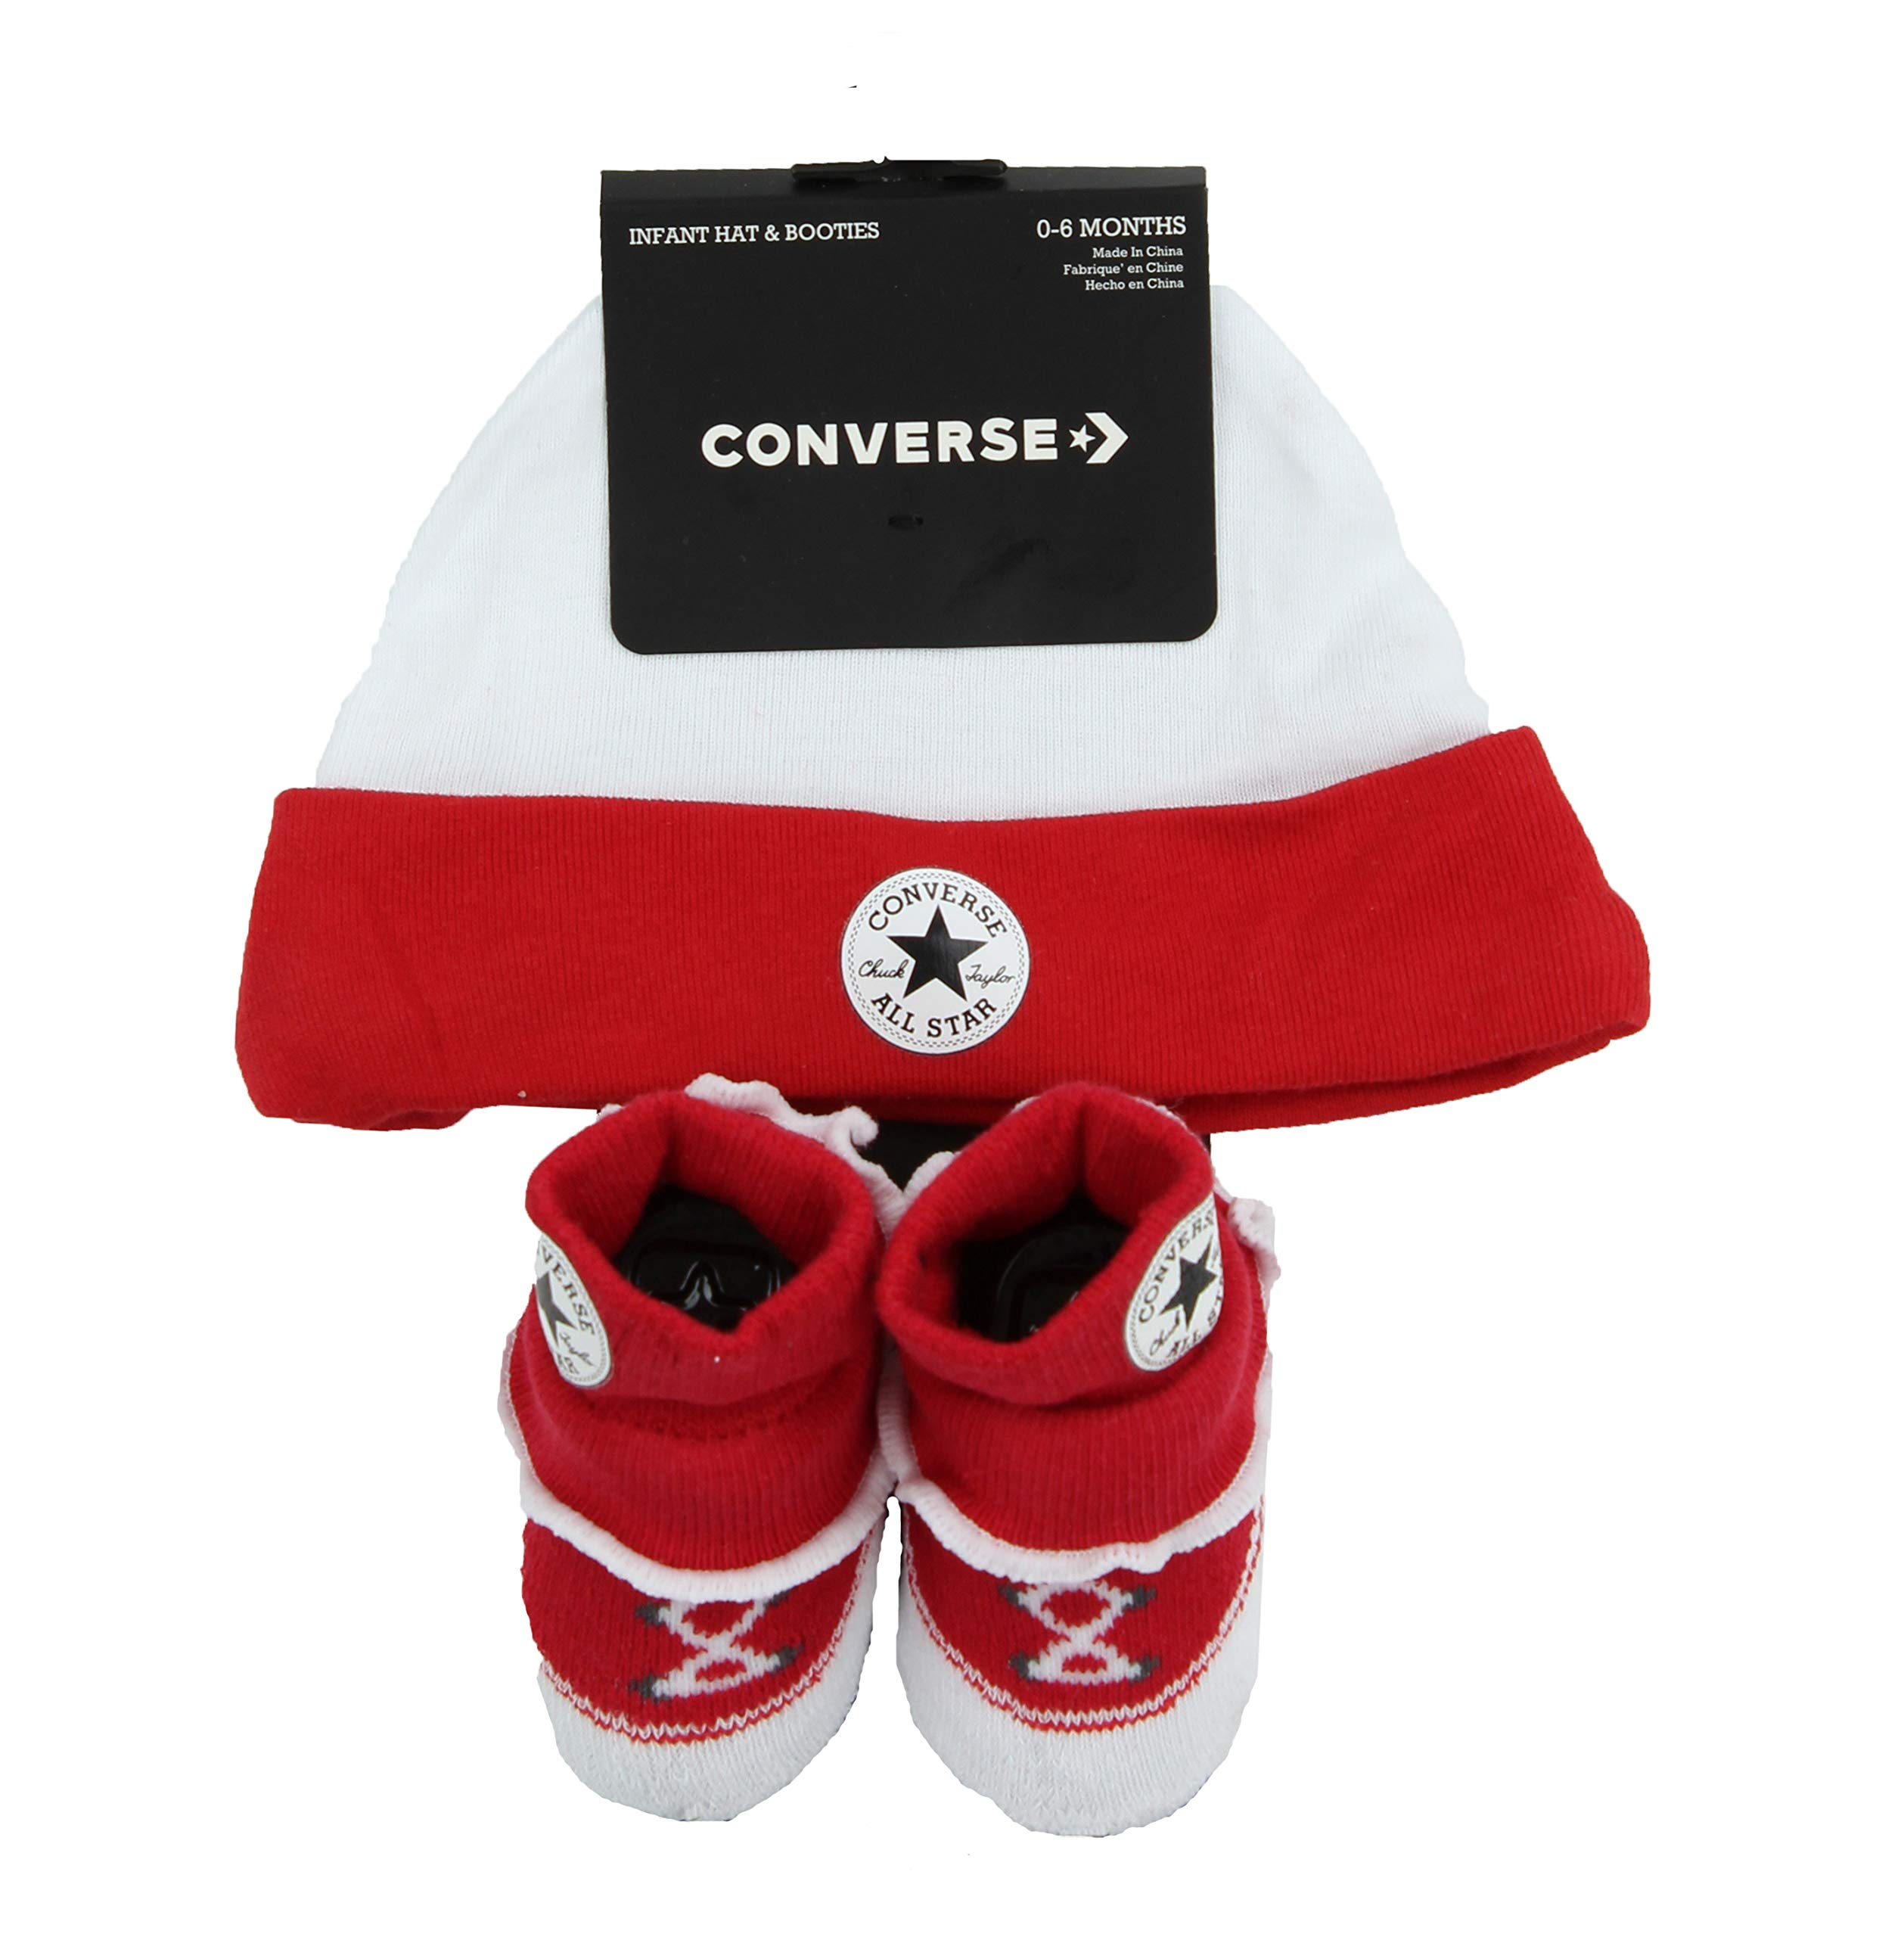 converse infant hat and booties